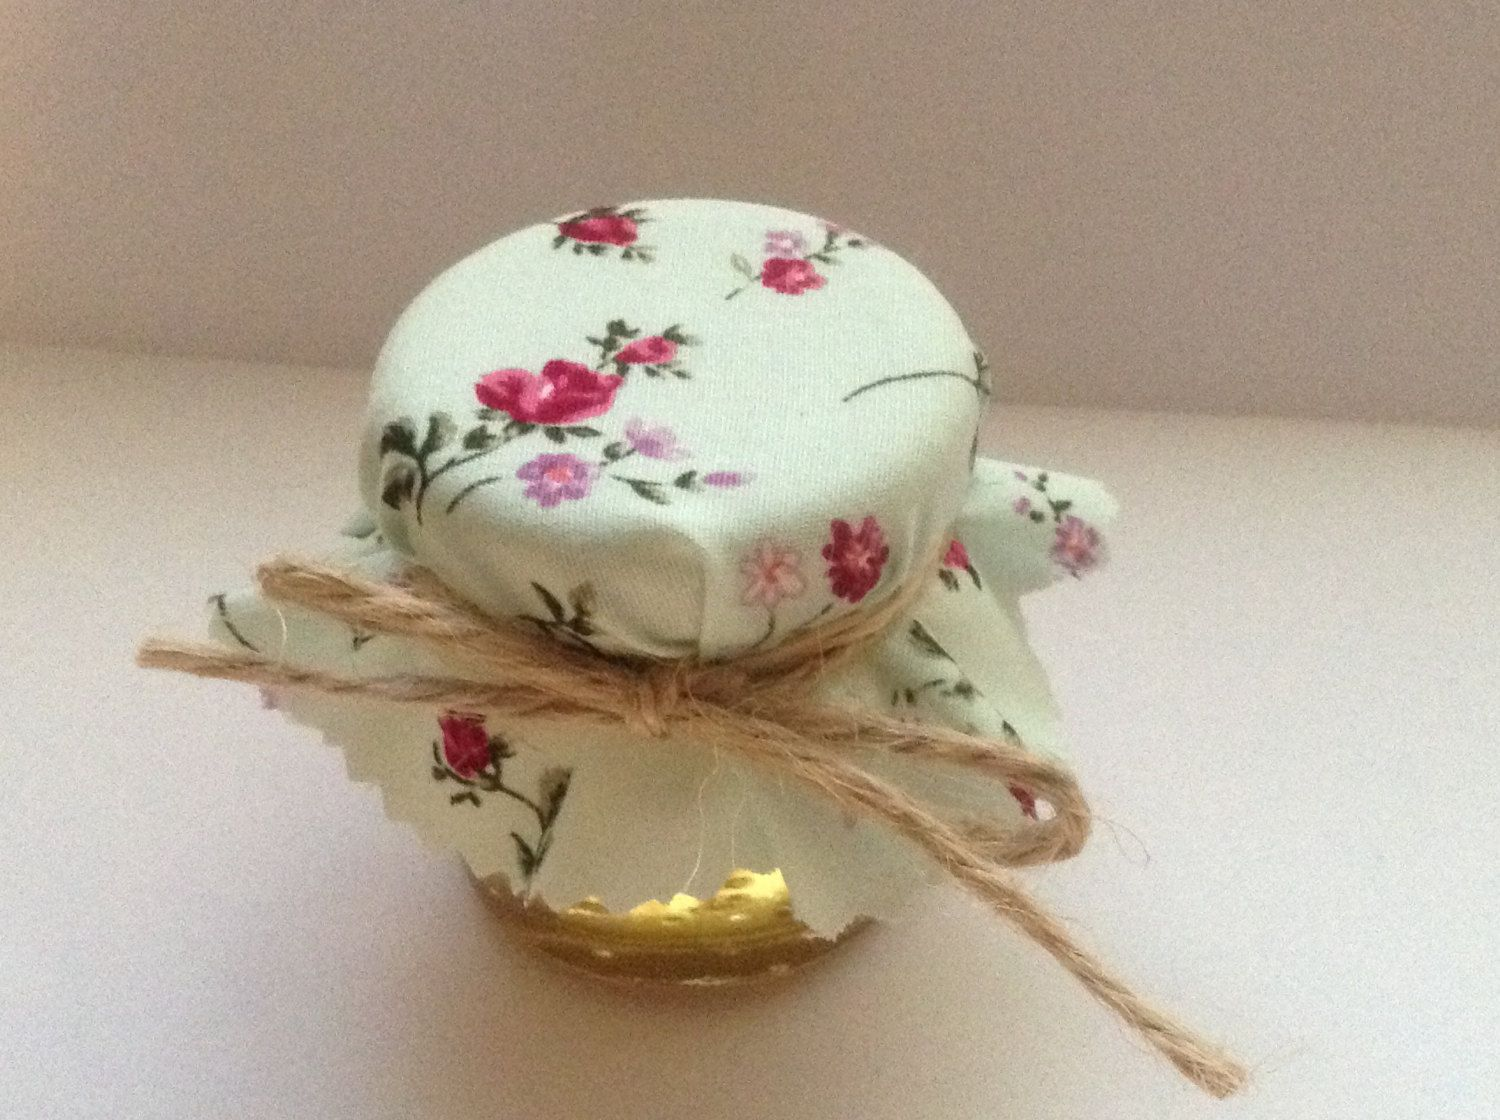 wedding favors ideas do it yourself%0A Do It Yourself Mini Jar Wedding Favour Fill with Preserves  candy or bath  salts